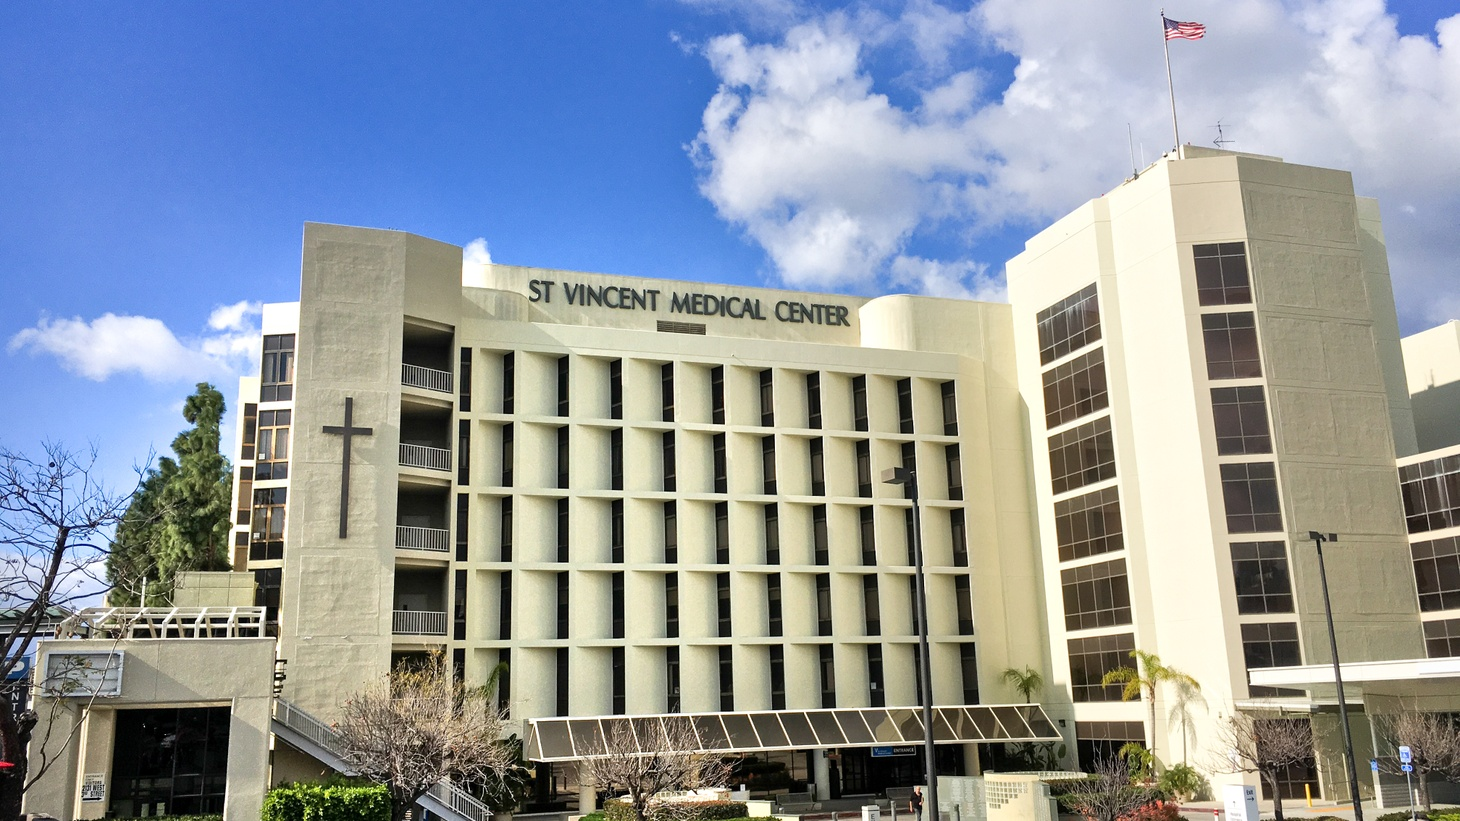 St. Vincent Medical Center on January 21, 2020.